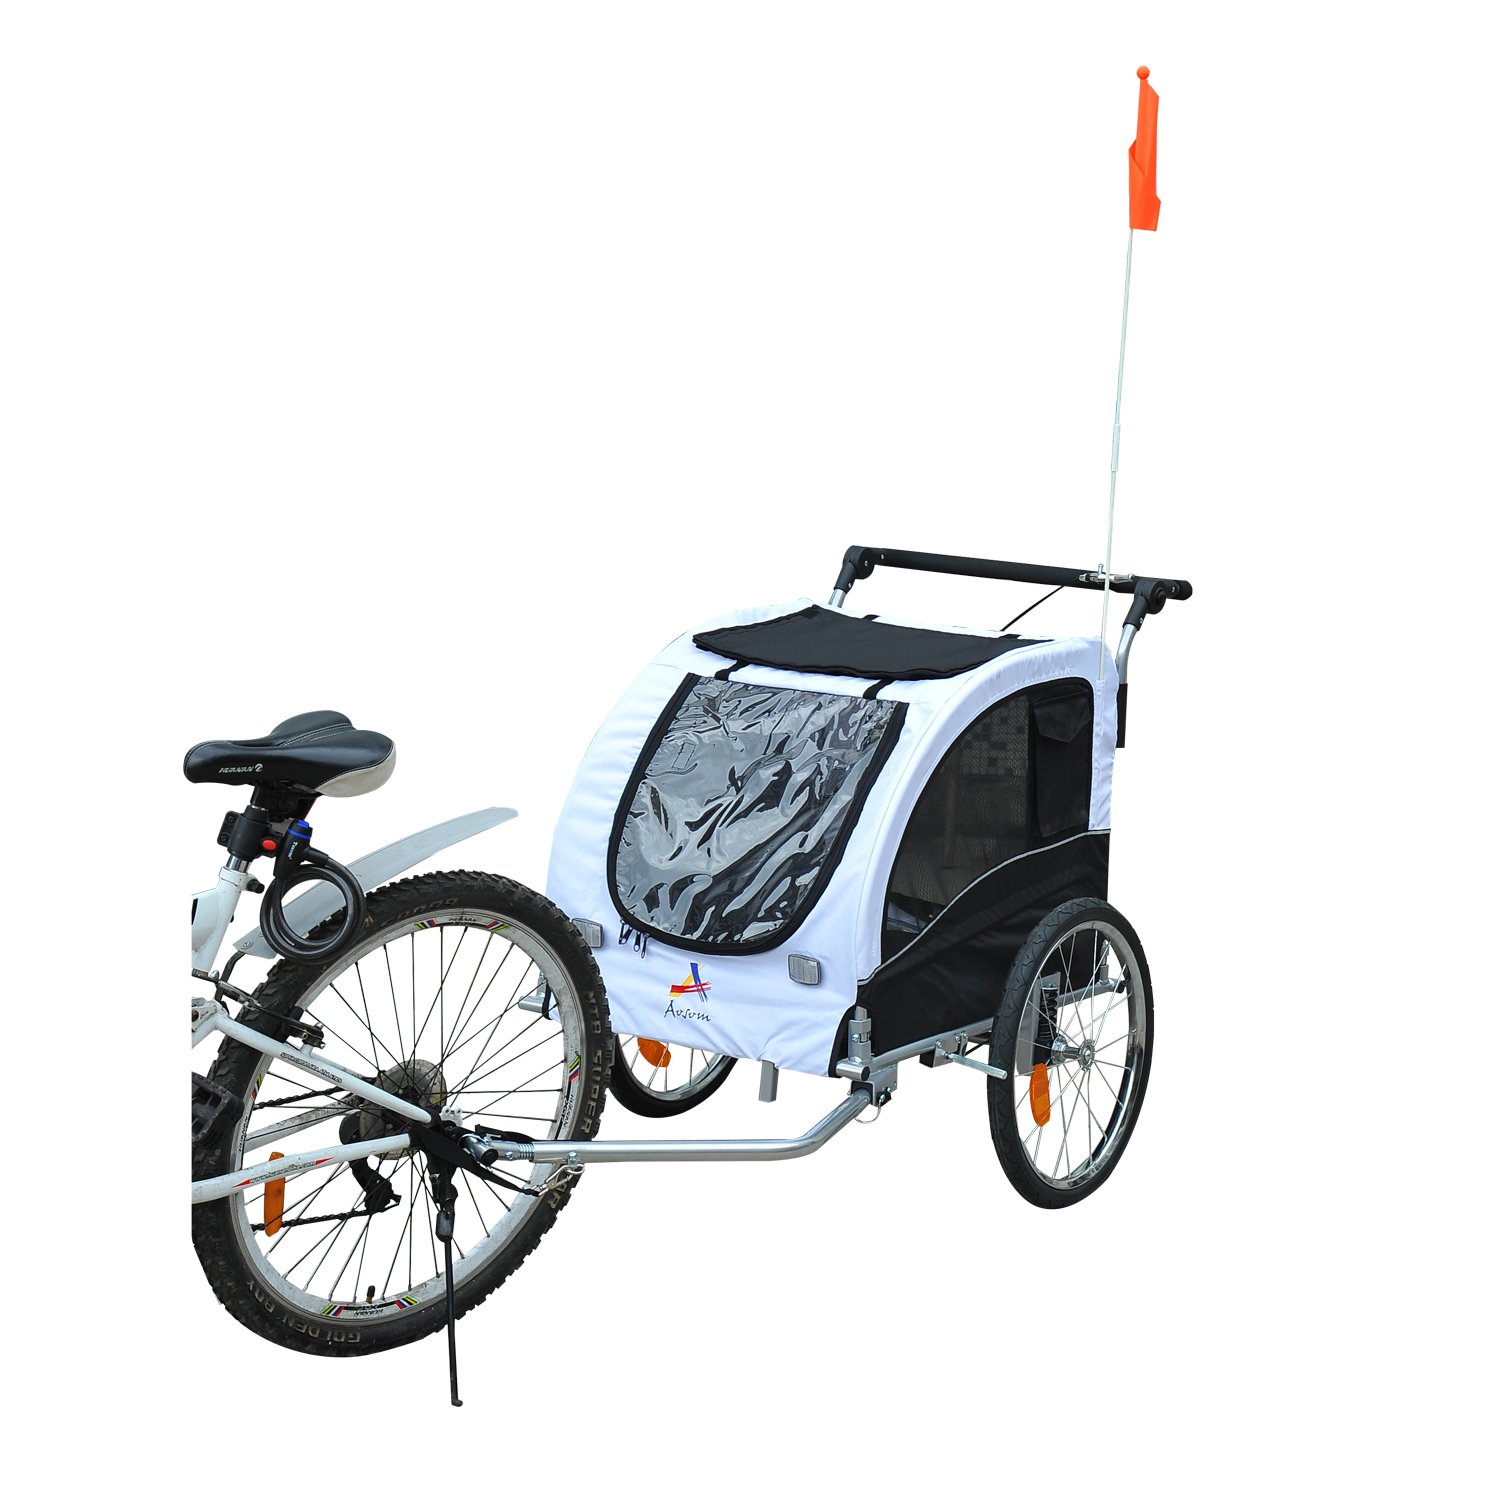 Aosom Elite II Pet Dog Bike Bicycle Trailer Stroller Jogger w/ Suspension - White by Aosom